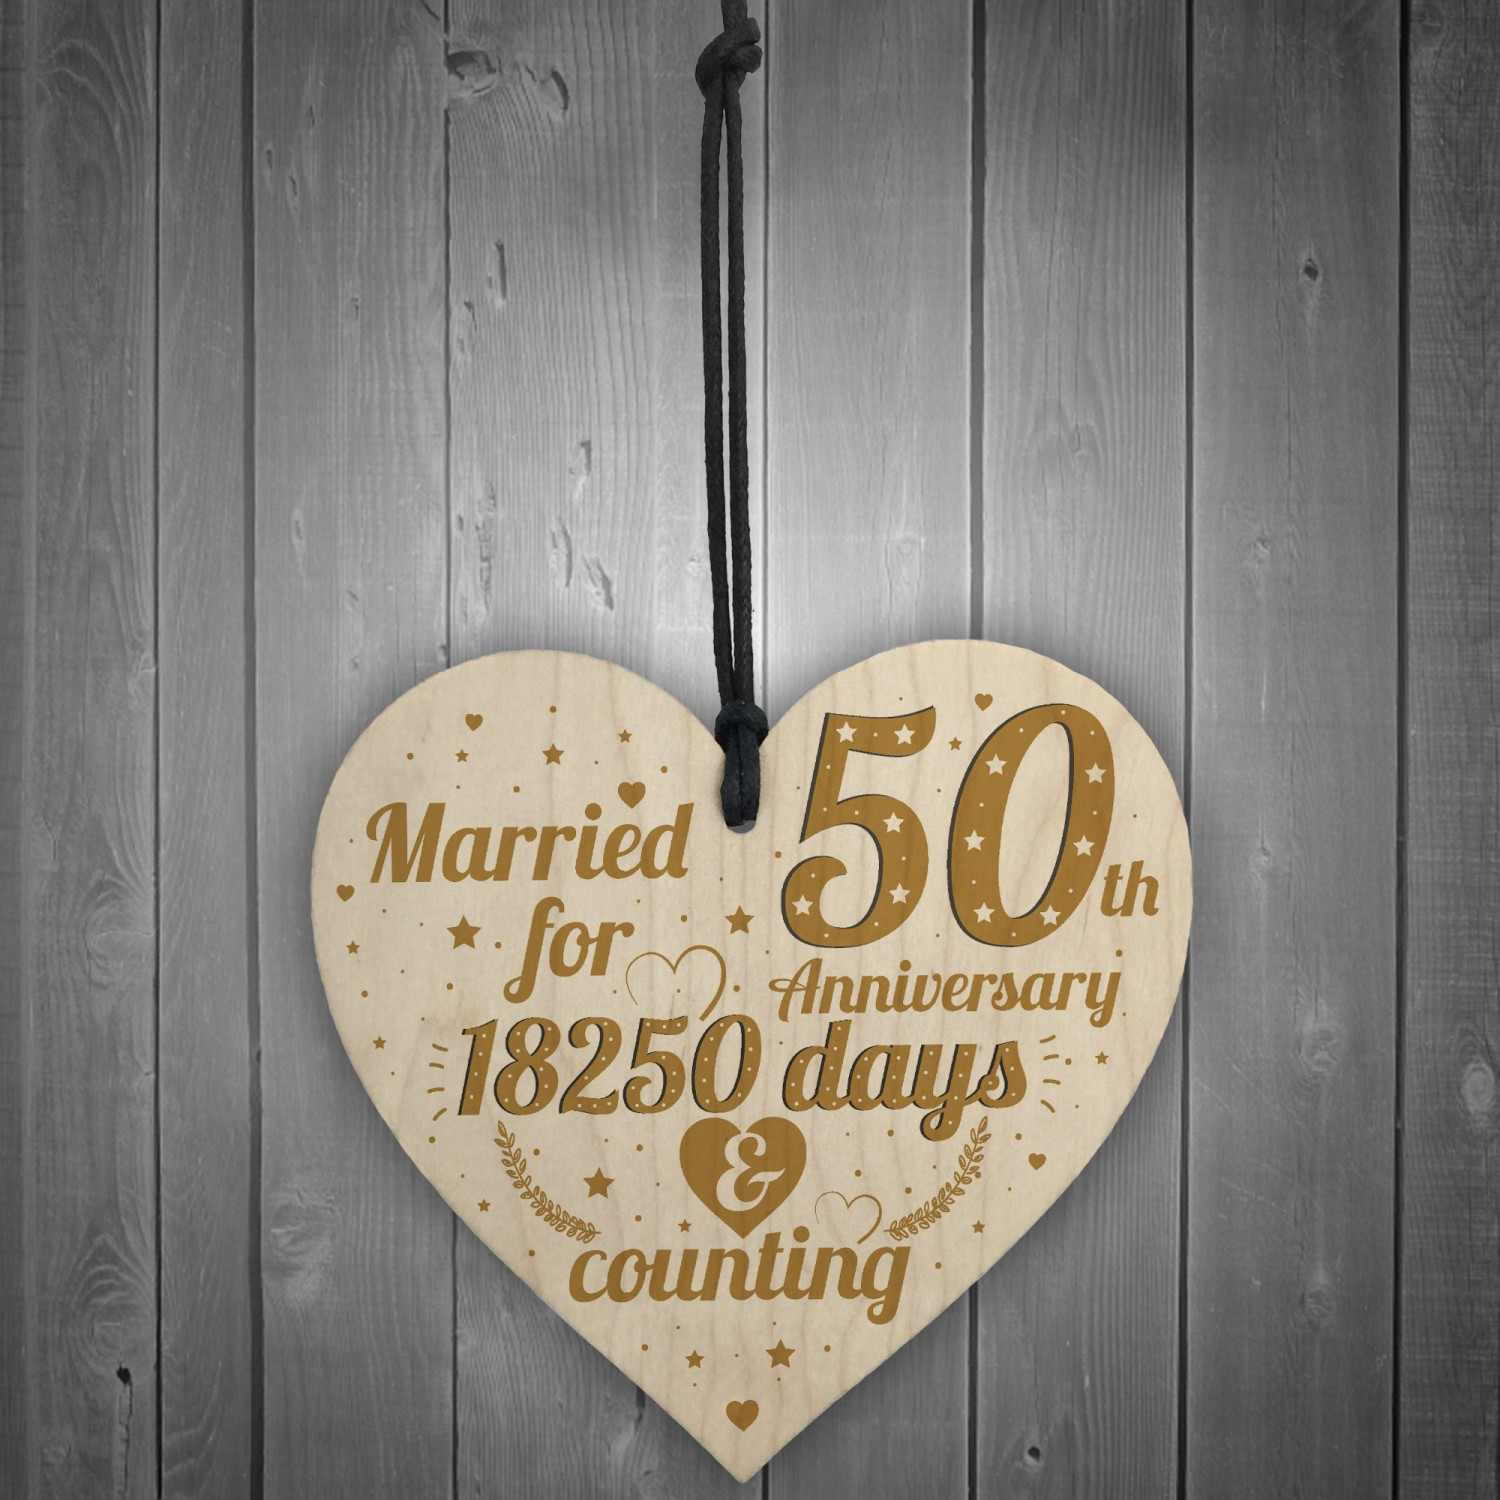 Perfect Wedding Anniversary Gift For Husband: 50th Wedding Anniversary Gift Gold Fifty Years Gift For